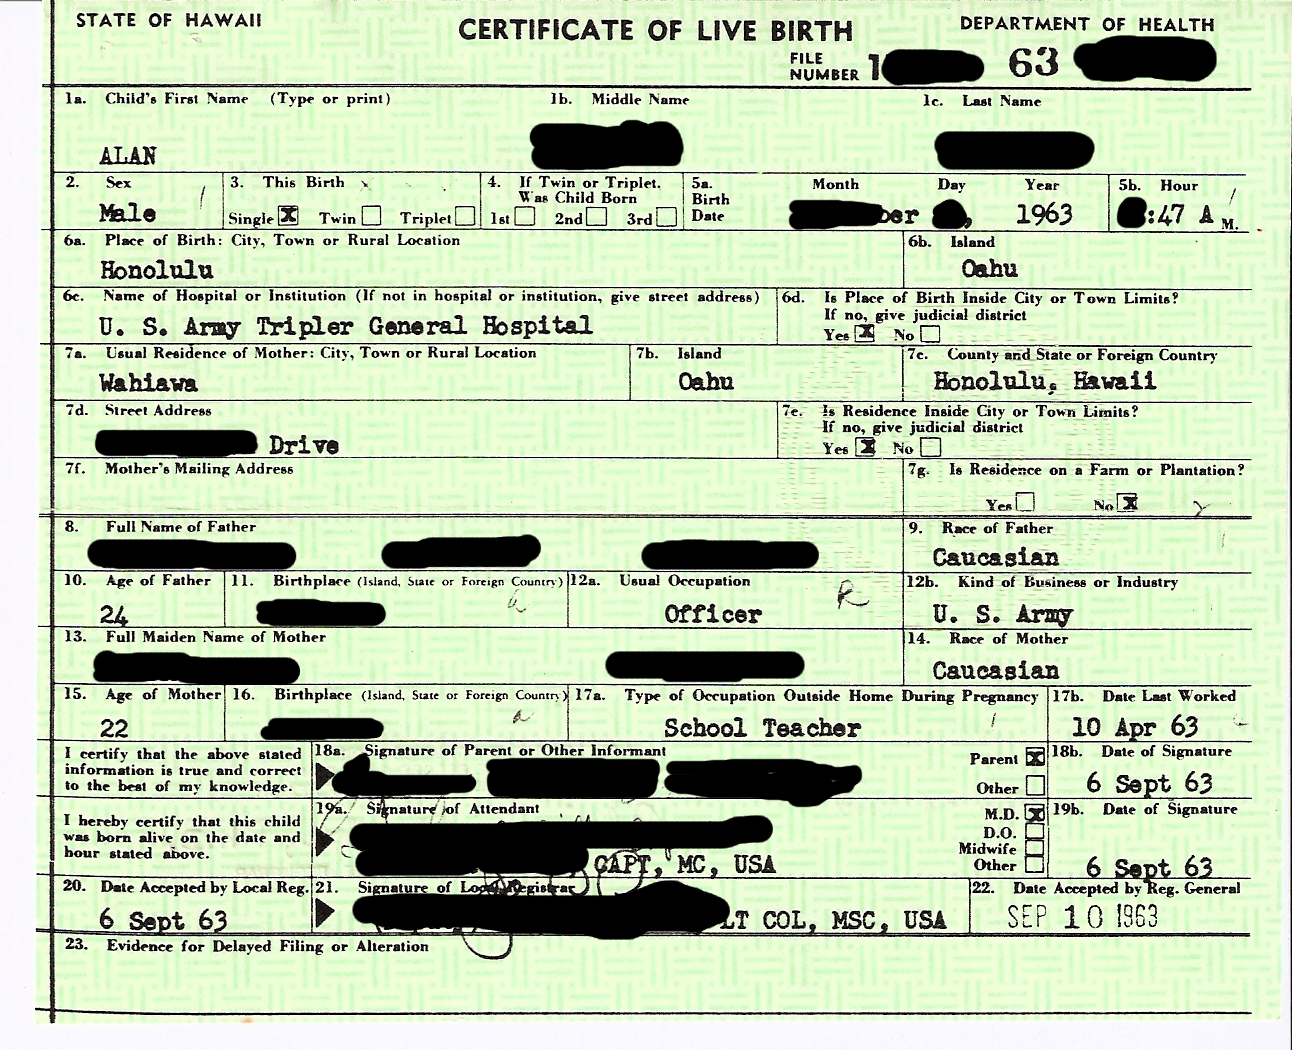 Hawaii Birth Certificate – 1963 | SnarkyBytes